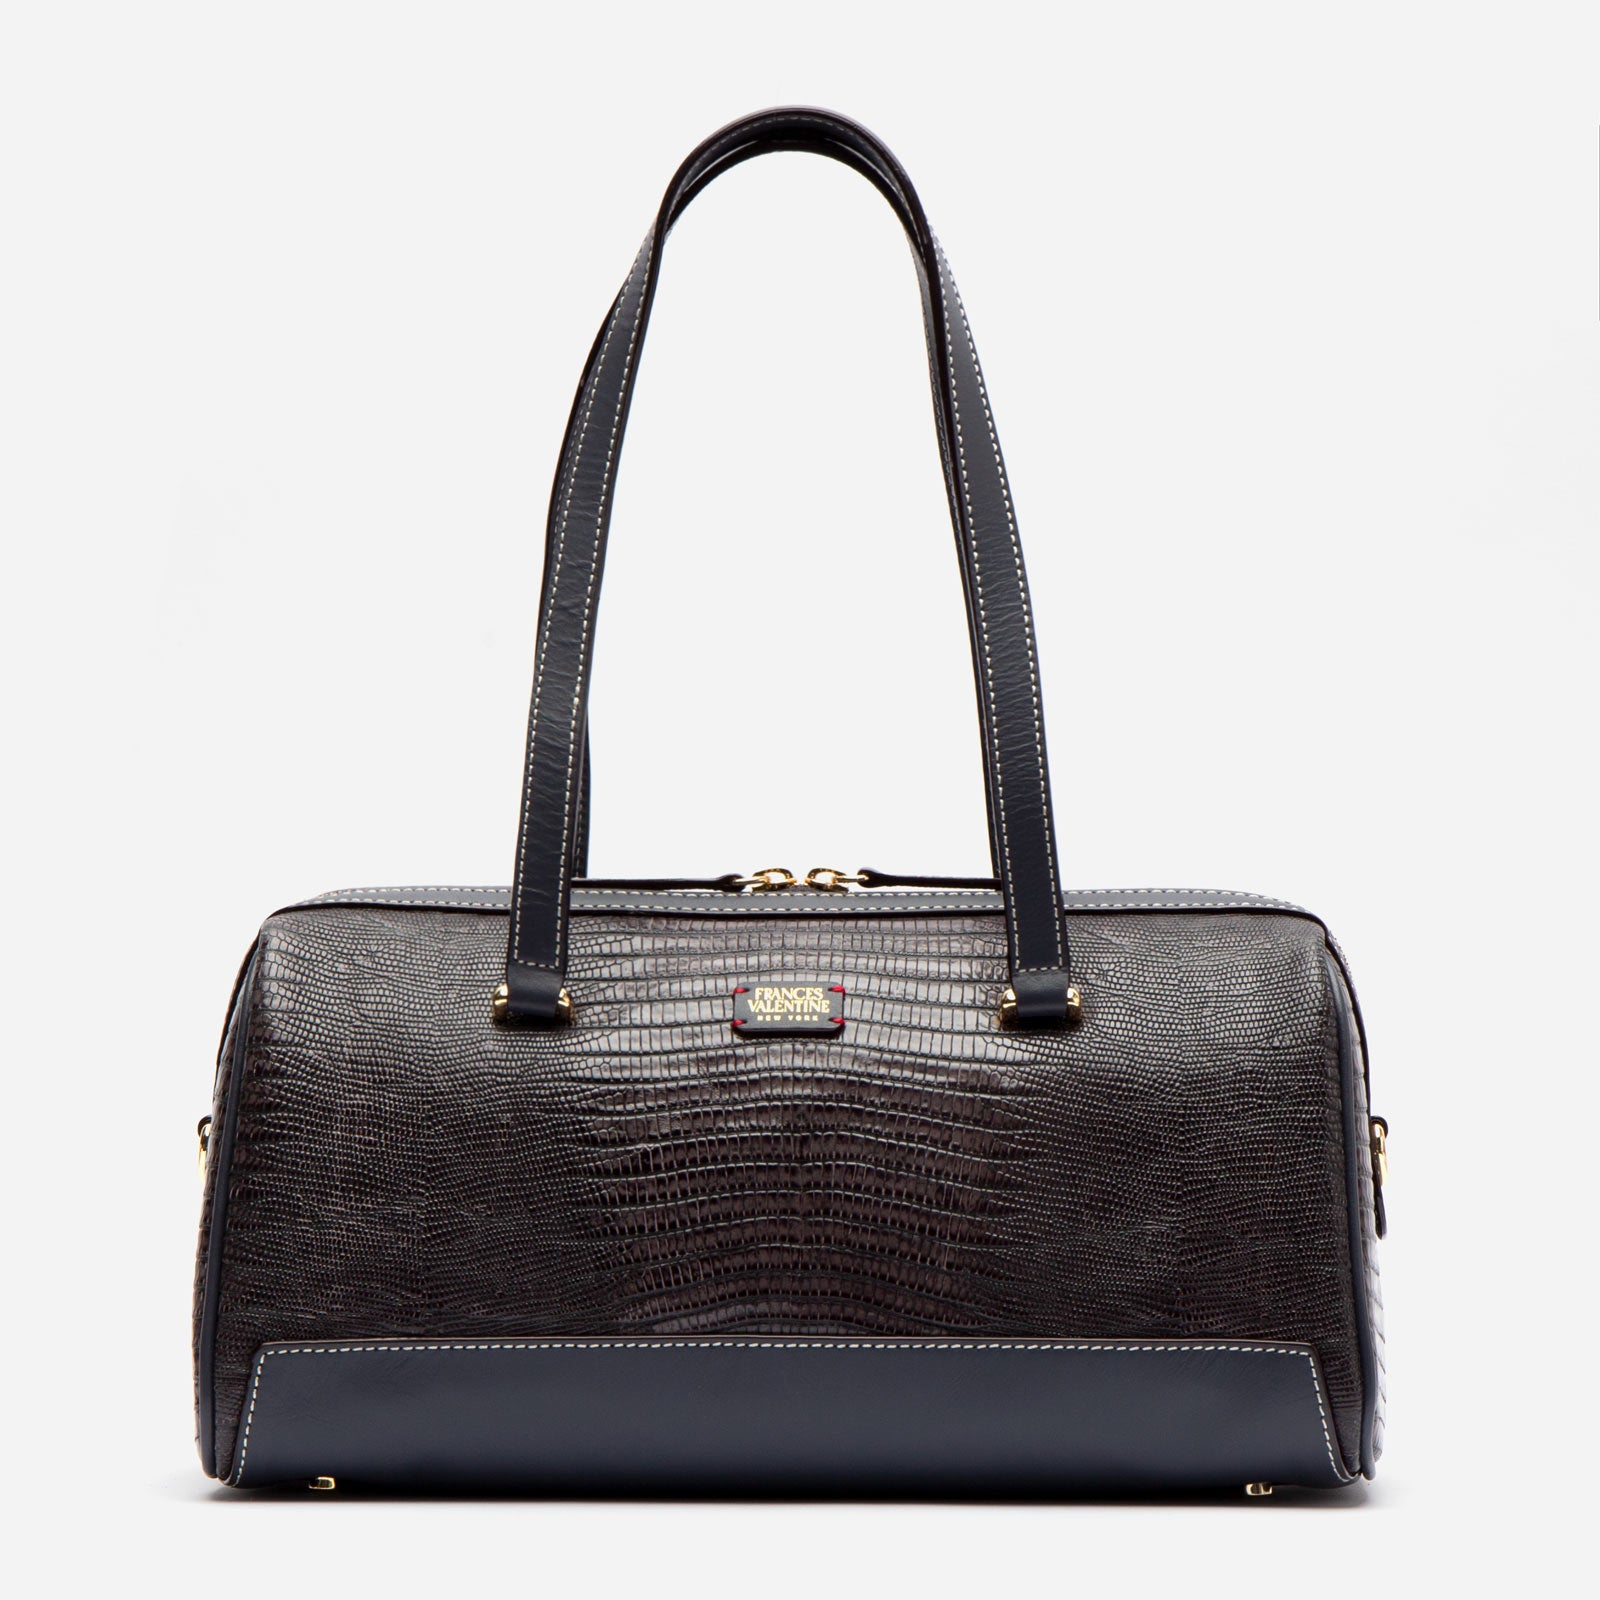 Avril Barrel Bag Lizard Embossed Leather Grey - Frances Valentine